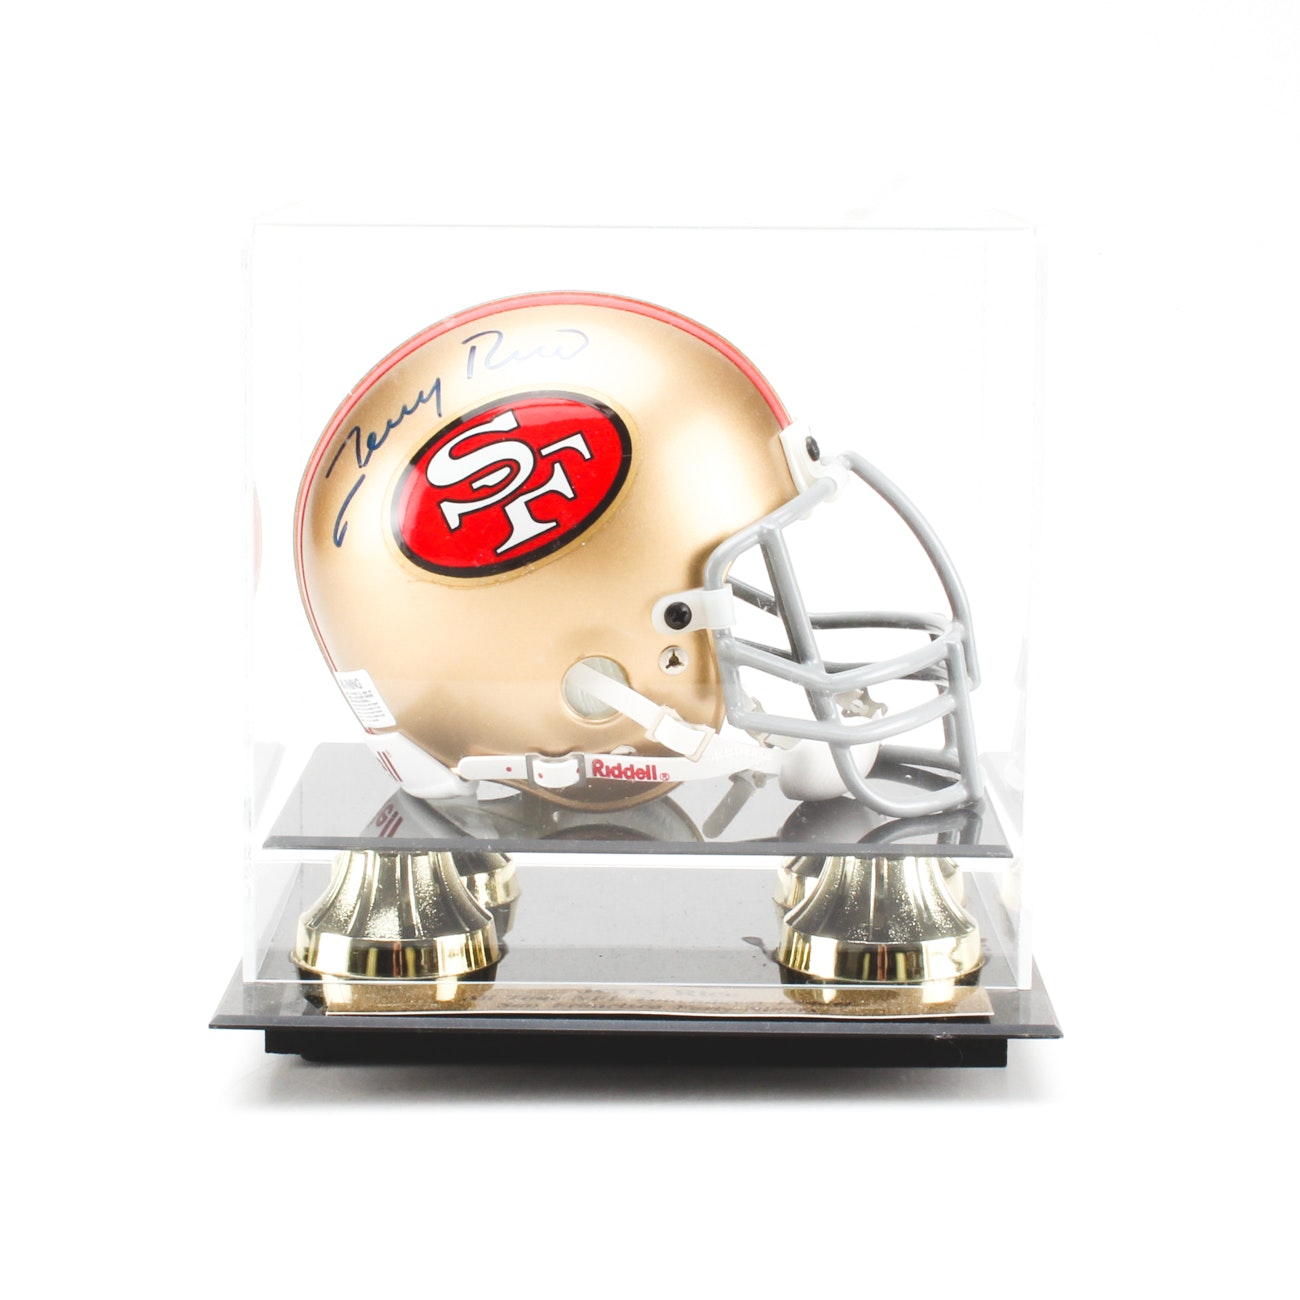 Jerry Rice Signed Mini Helmet with Case